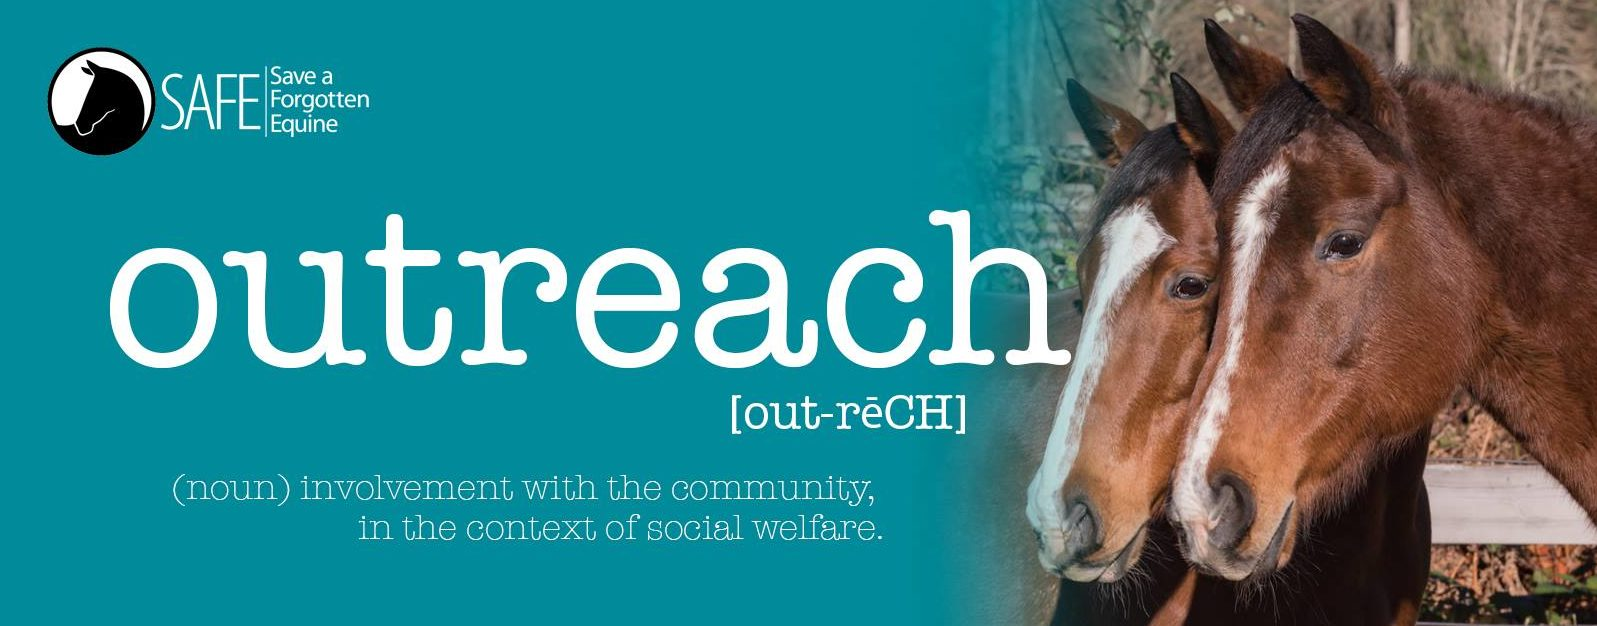 Outreach Recap 2018